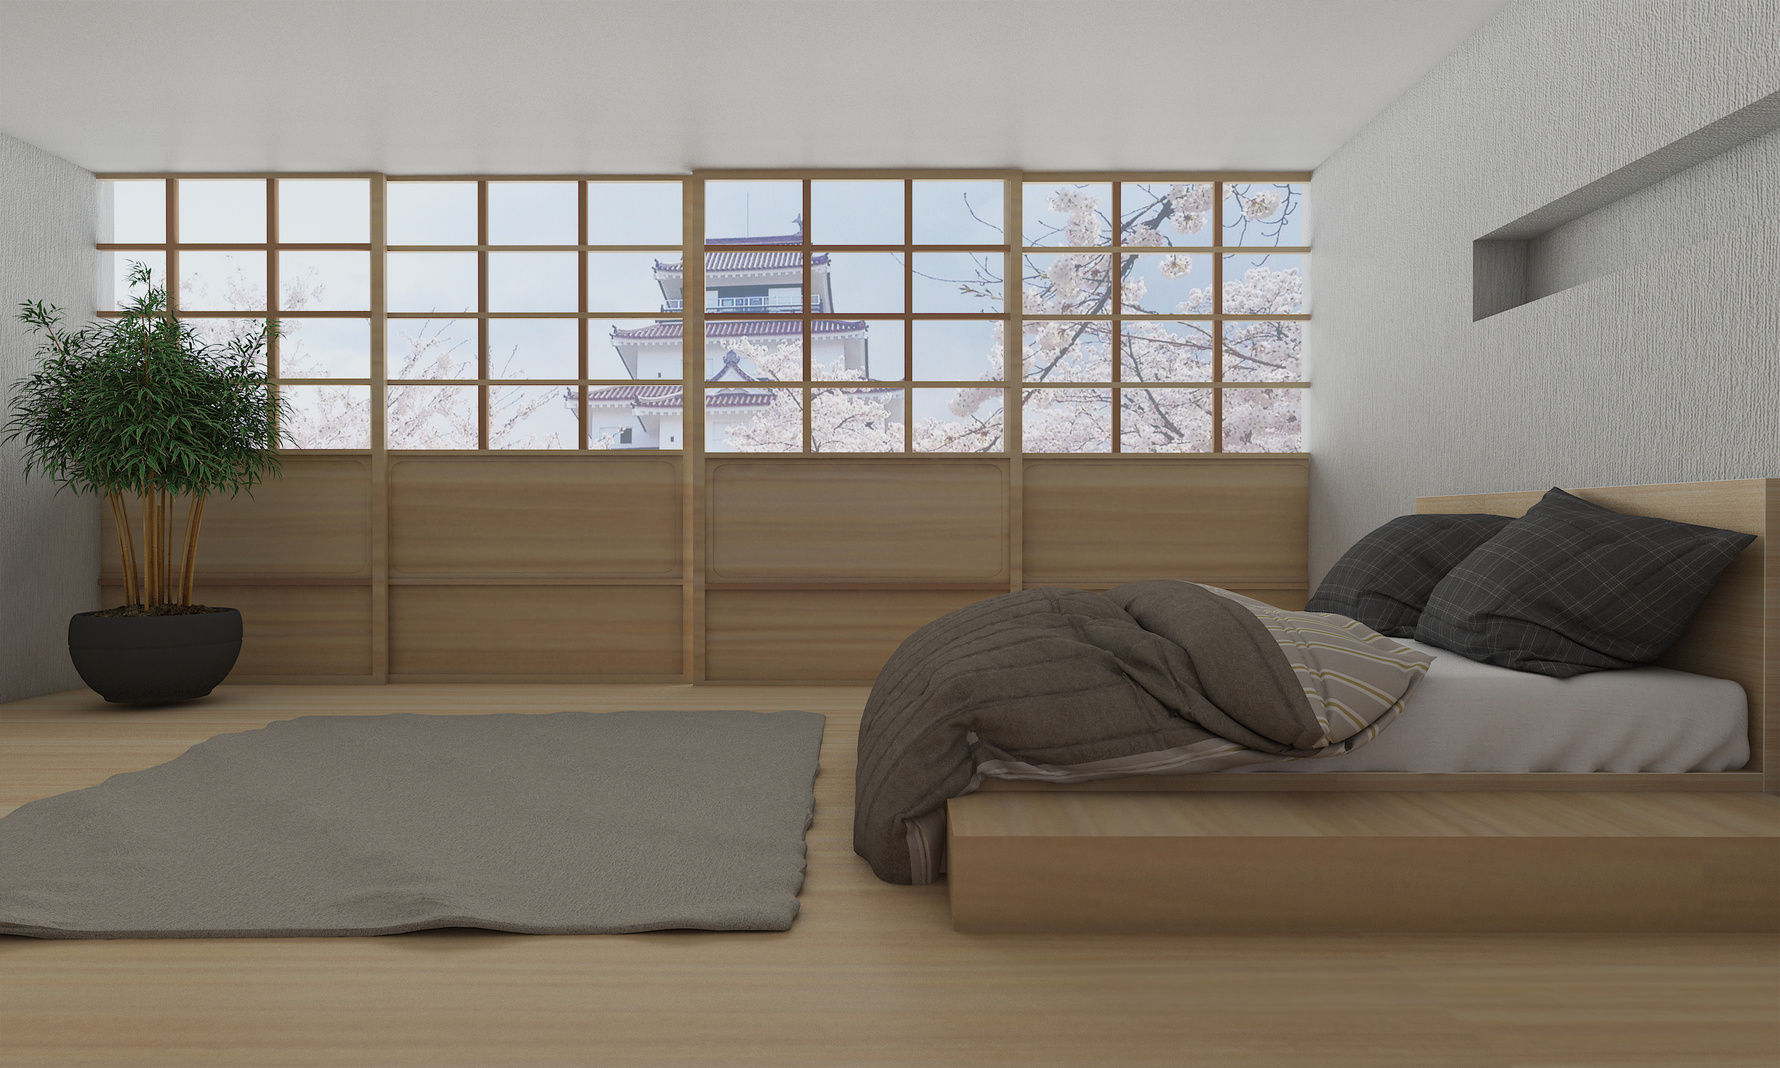 Modern bedroom interior with japanese style-3d rendering